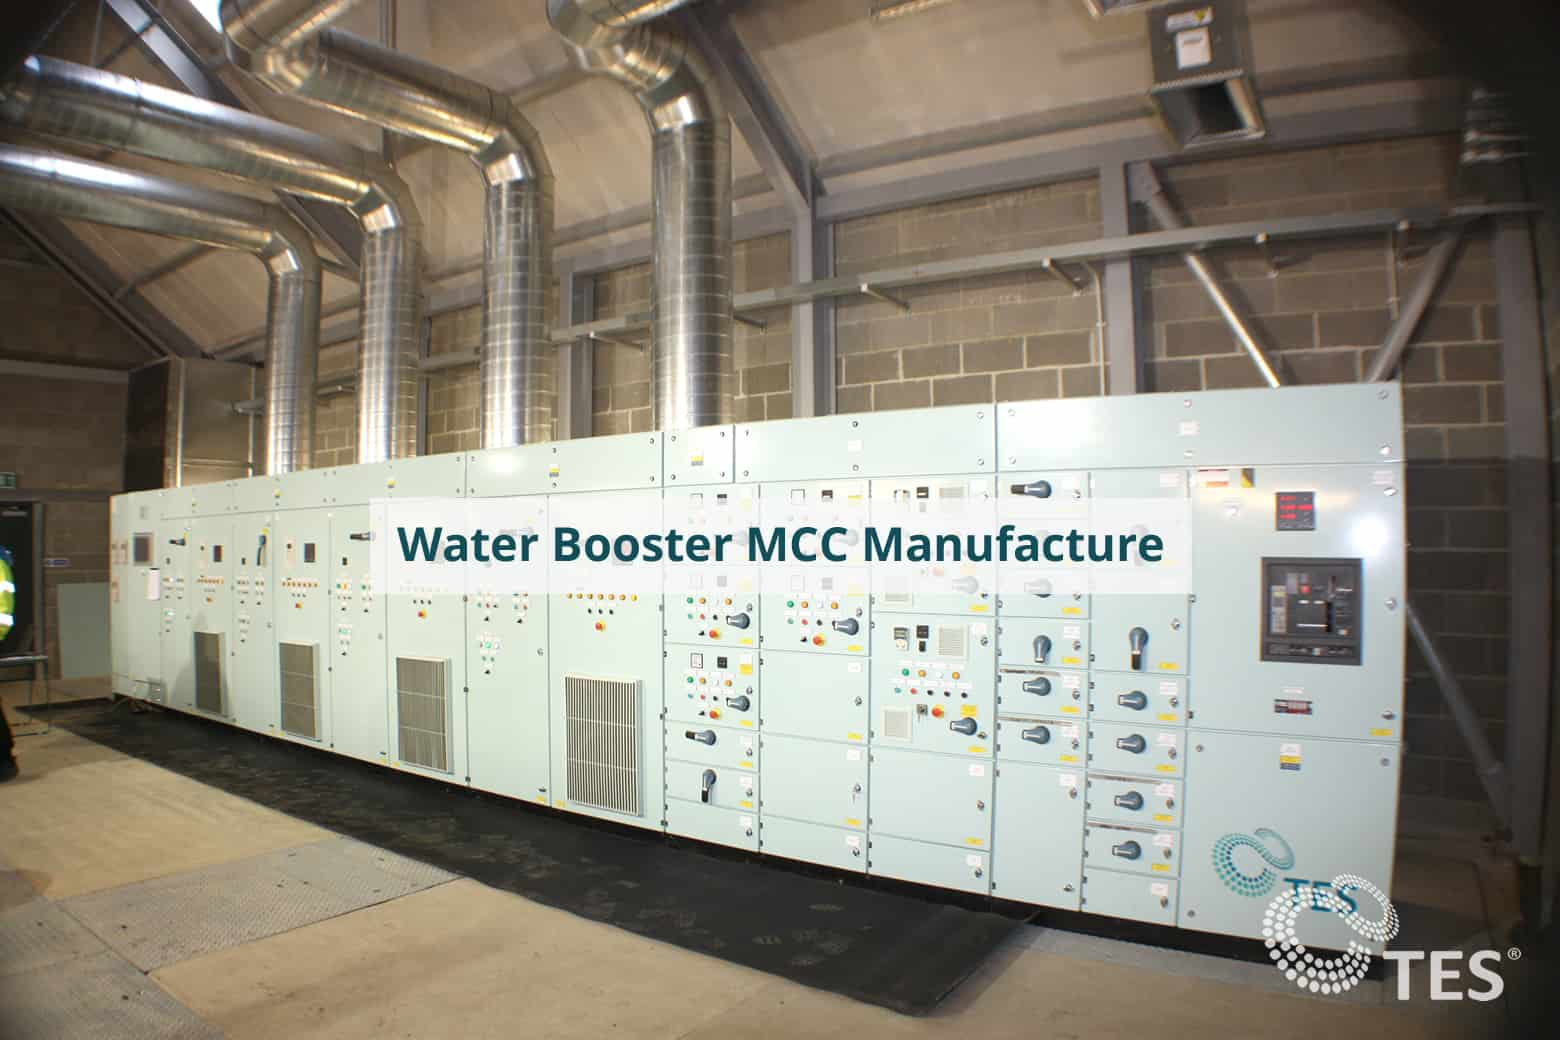 Water Booster MCC Manufacture